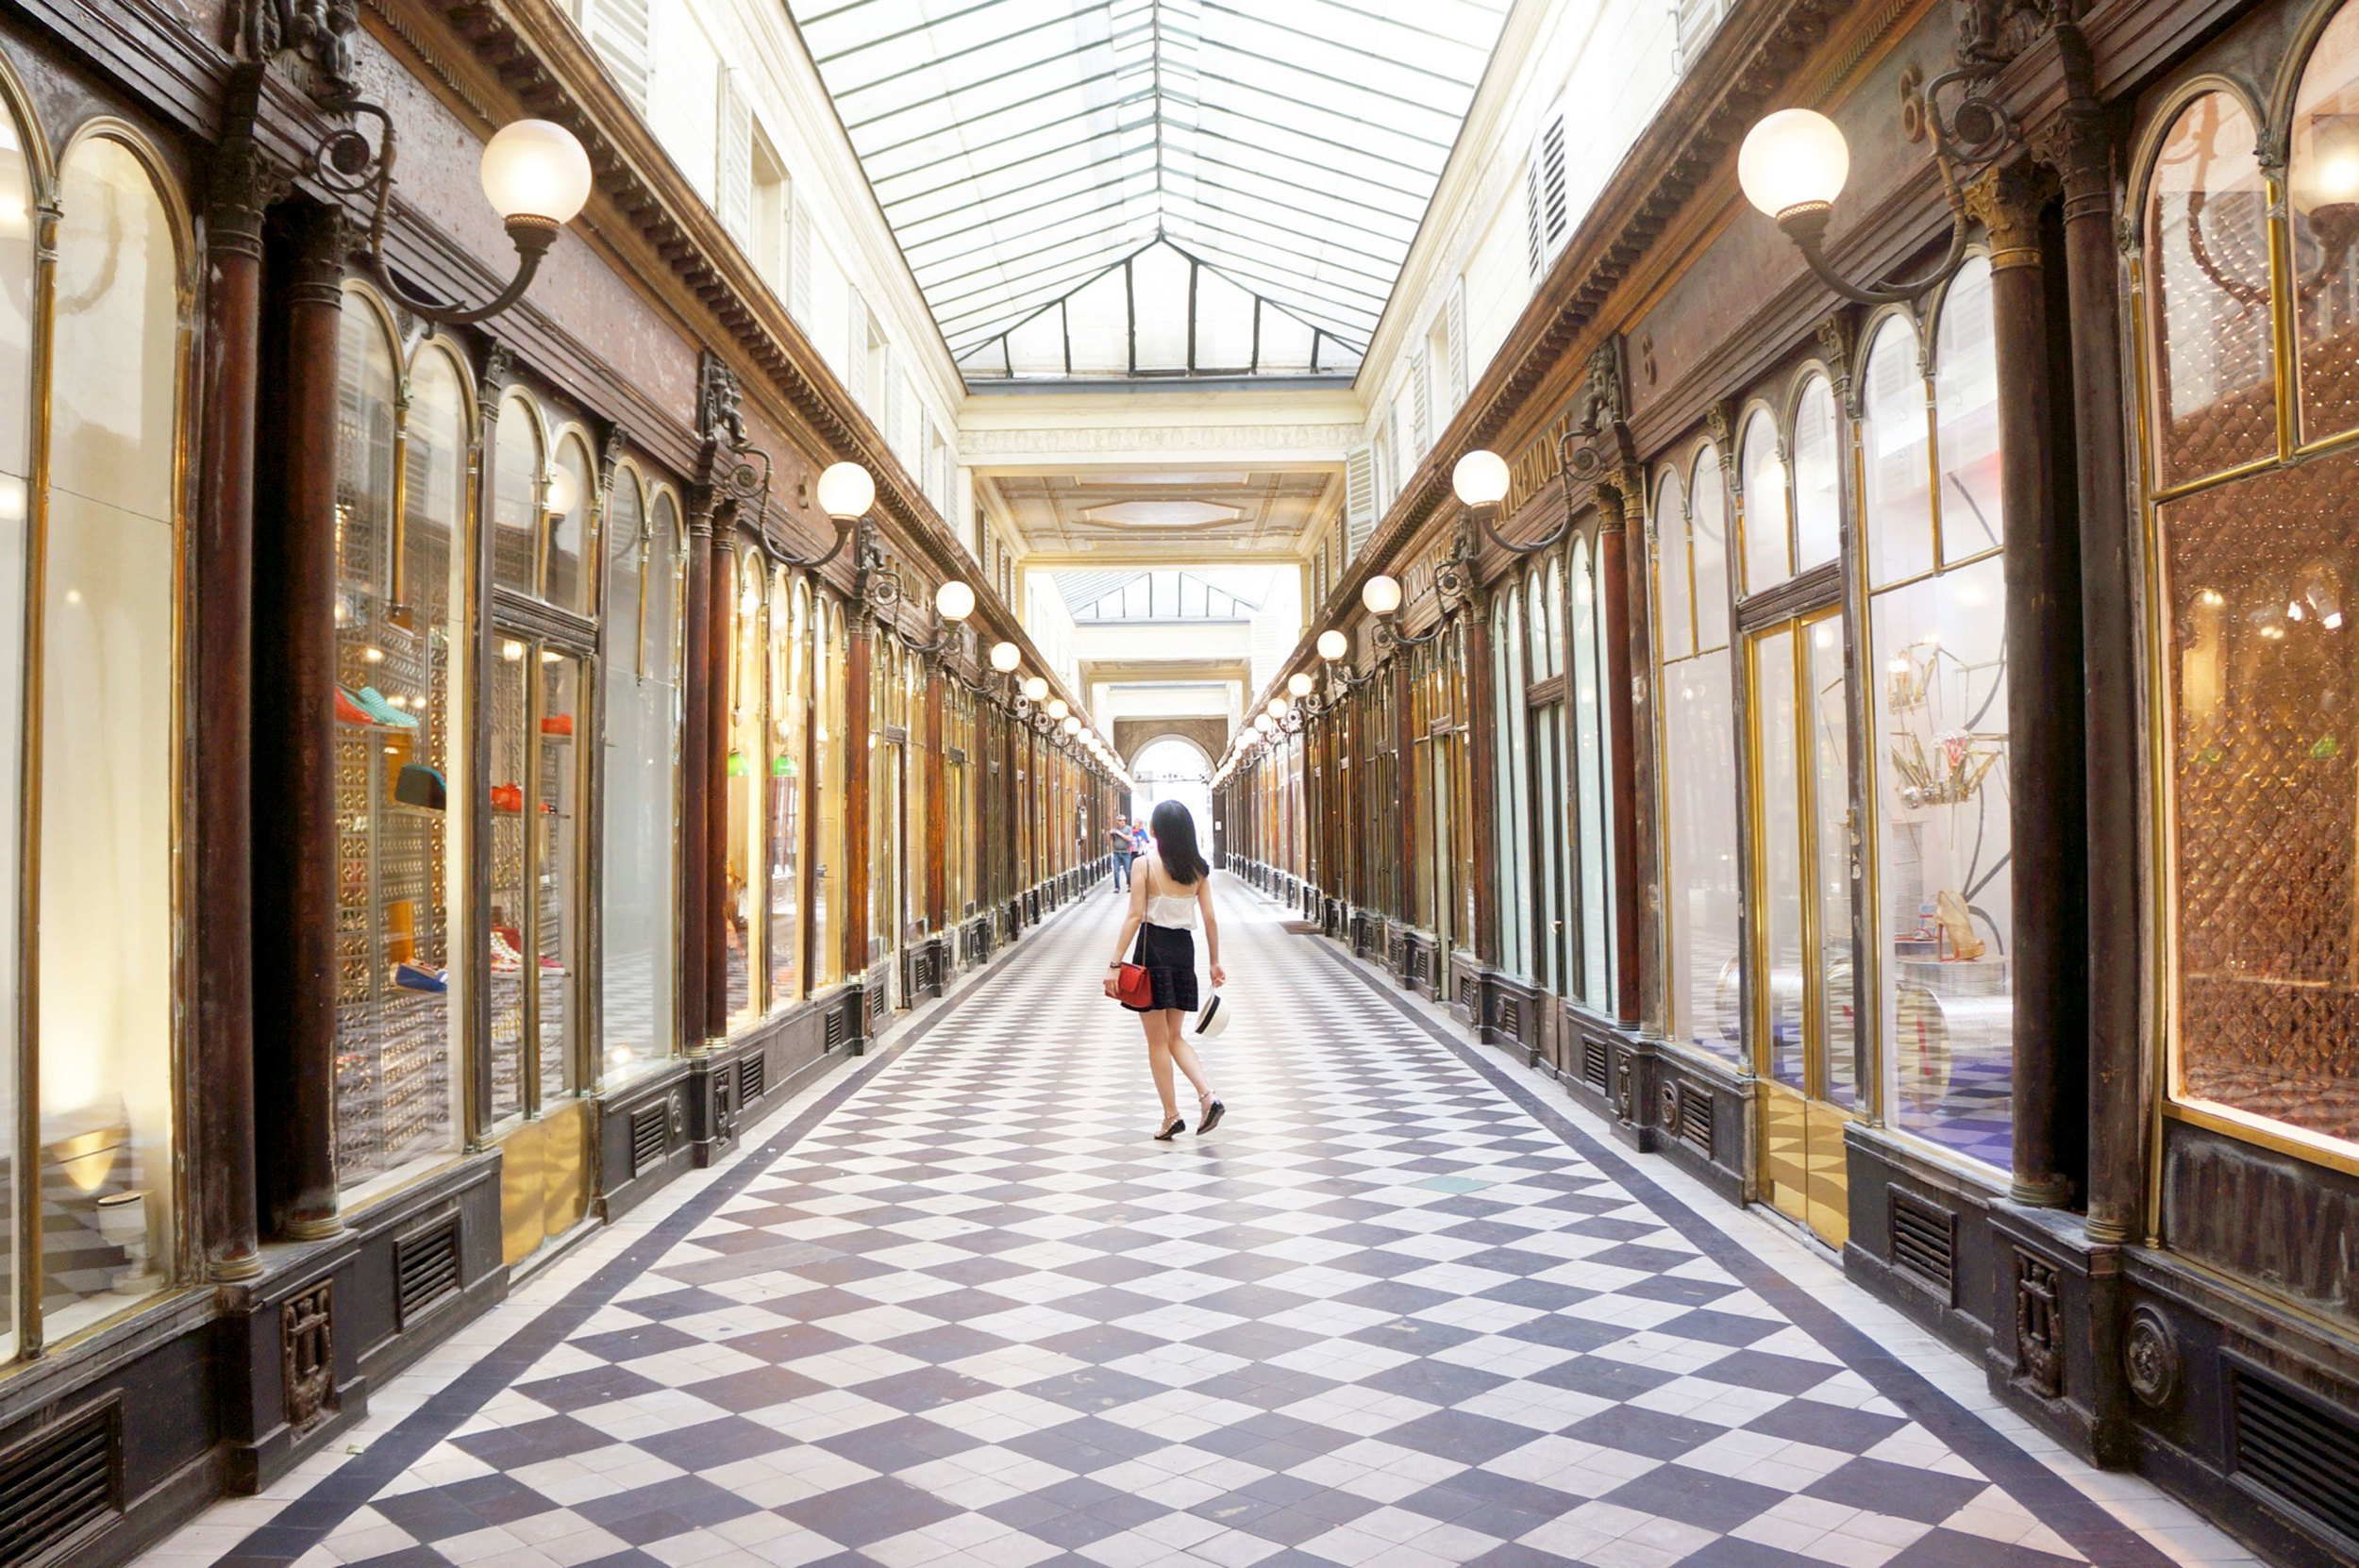 Getting lost pays off - wandering around led us to this beautiful arcade.